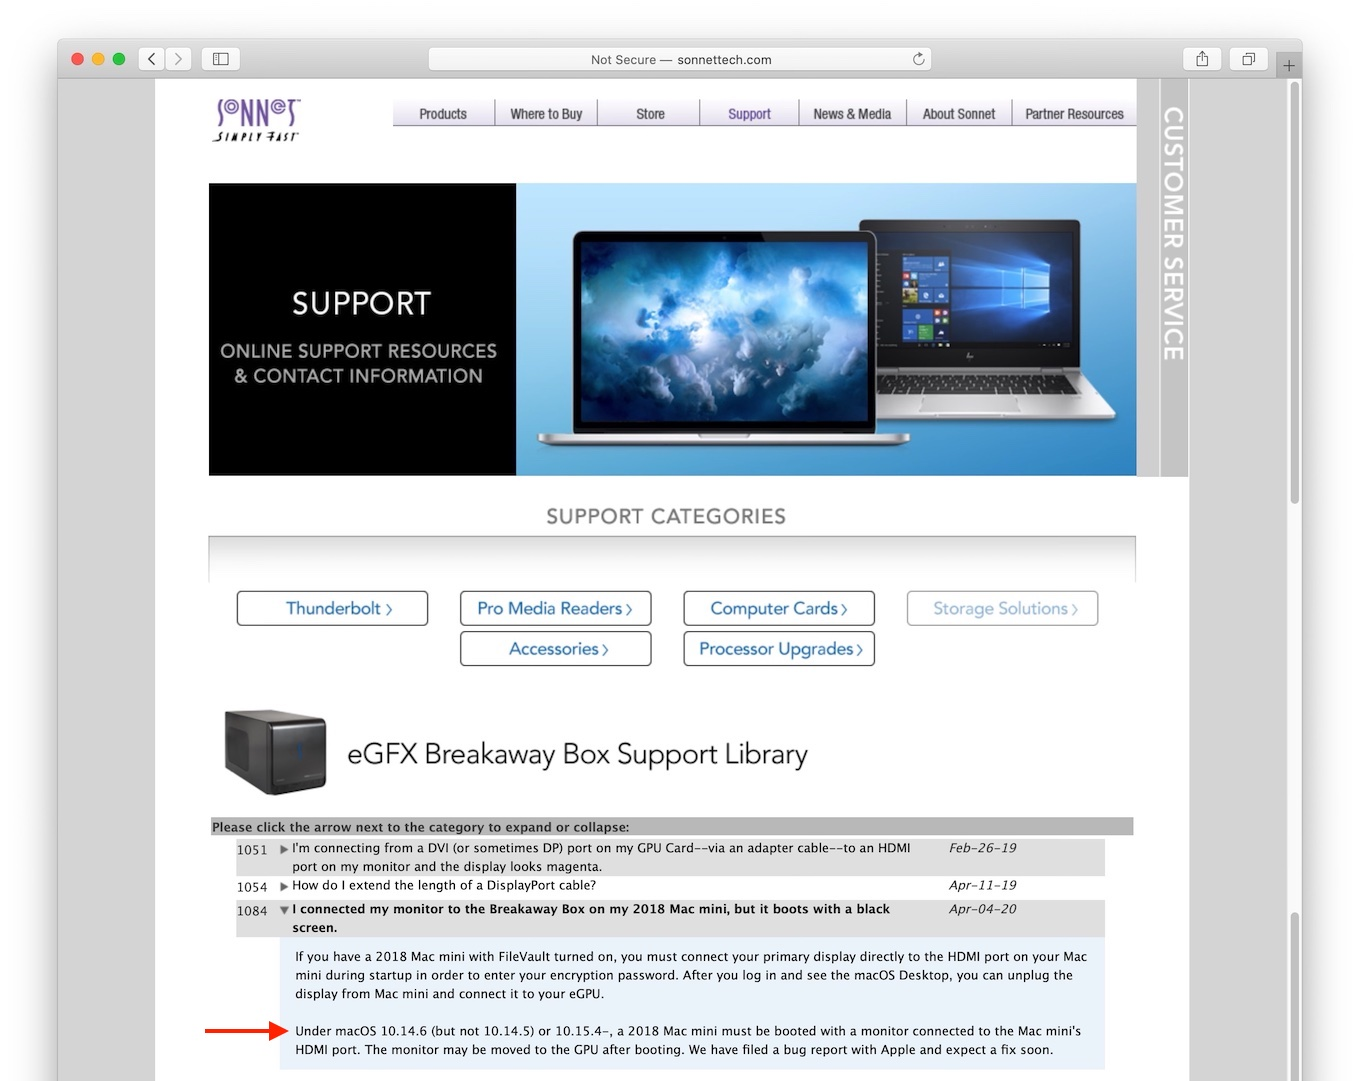 Sonnet Support Knowledge Base for macOS Catalina eGPU